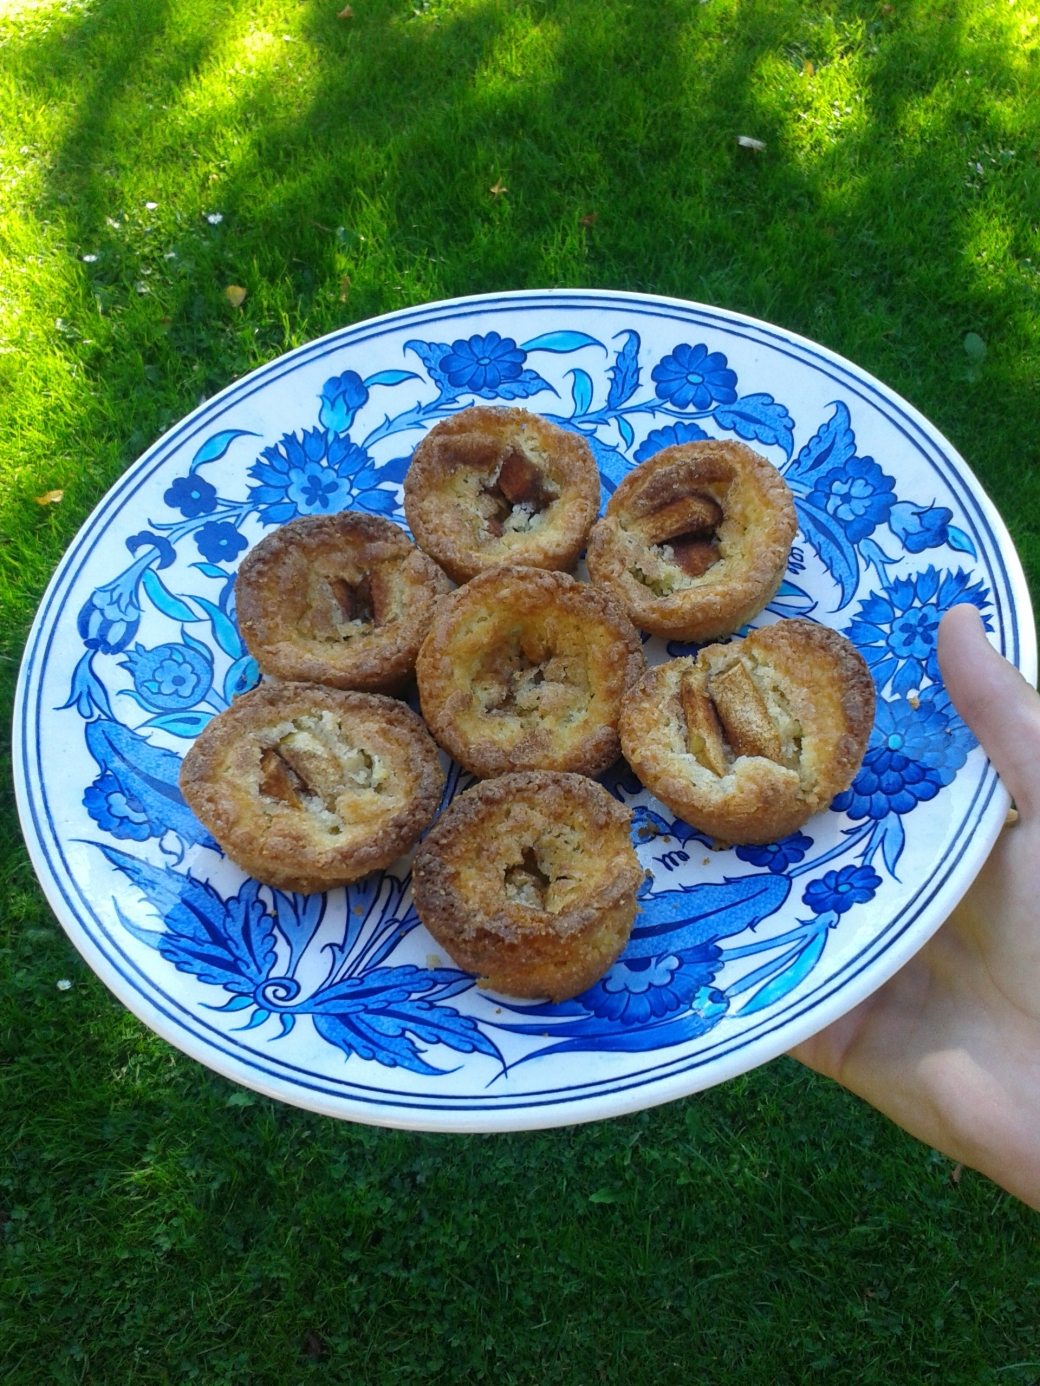 Mirabelle cakes by mum